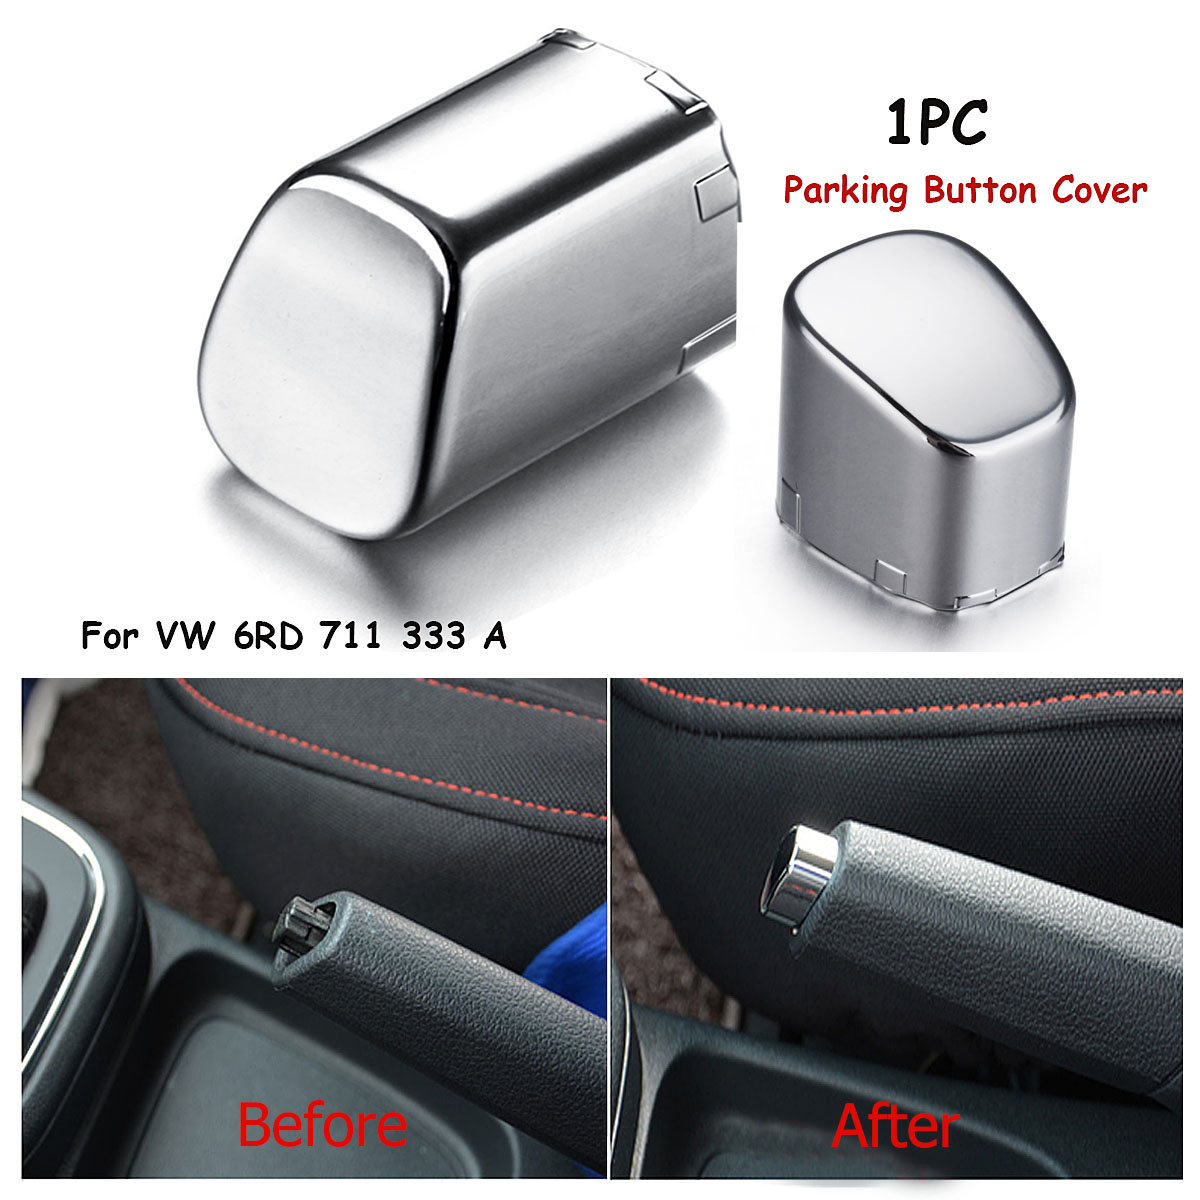 1x Car Handbrake Lever Parking Button Cover Chrome Decoration Shell For VW Polo CROSS GTI 6RD 711 333 A Car Styling Accessories